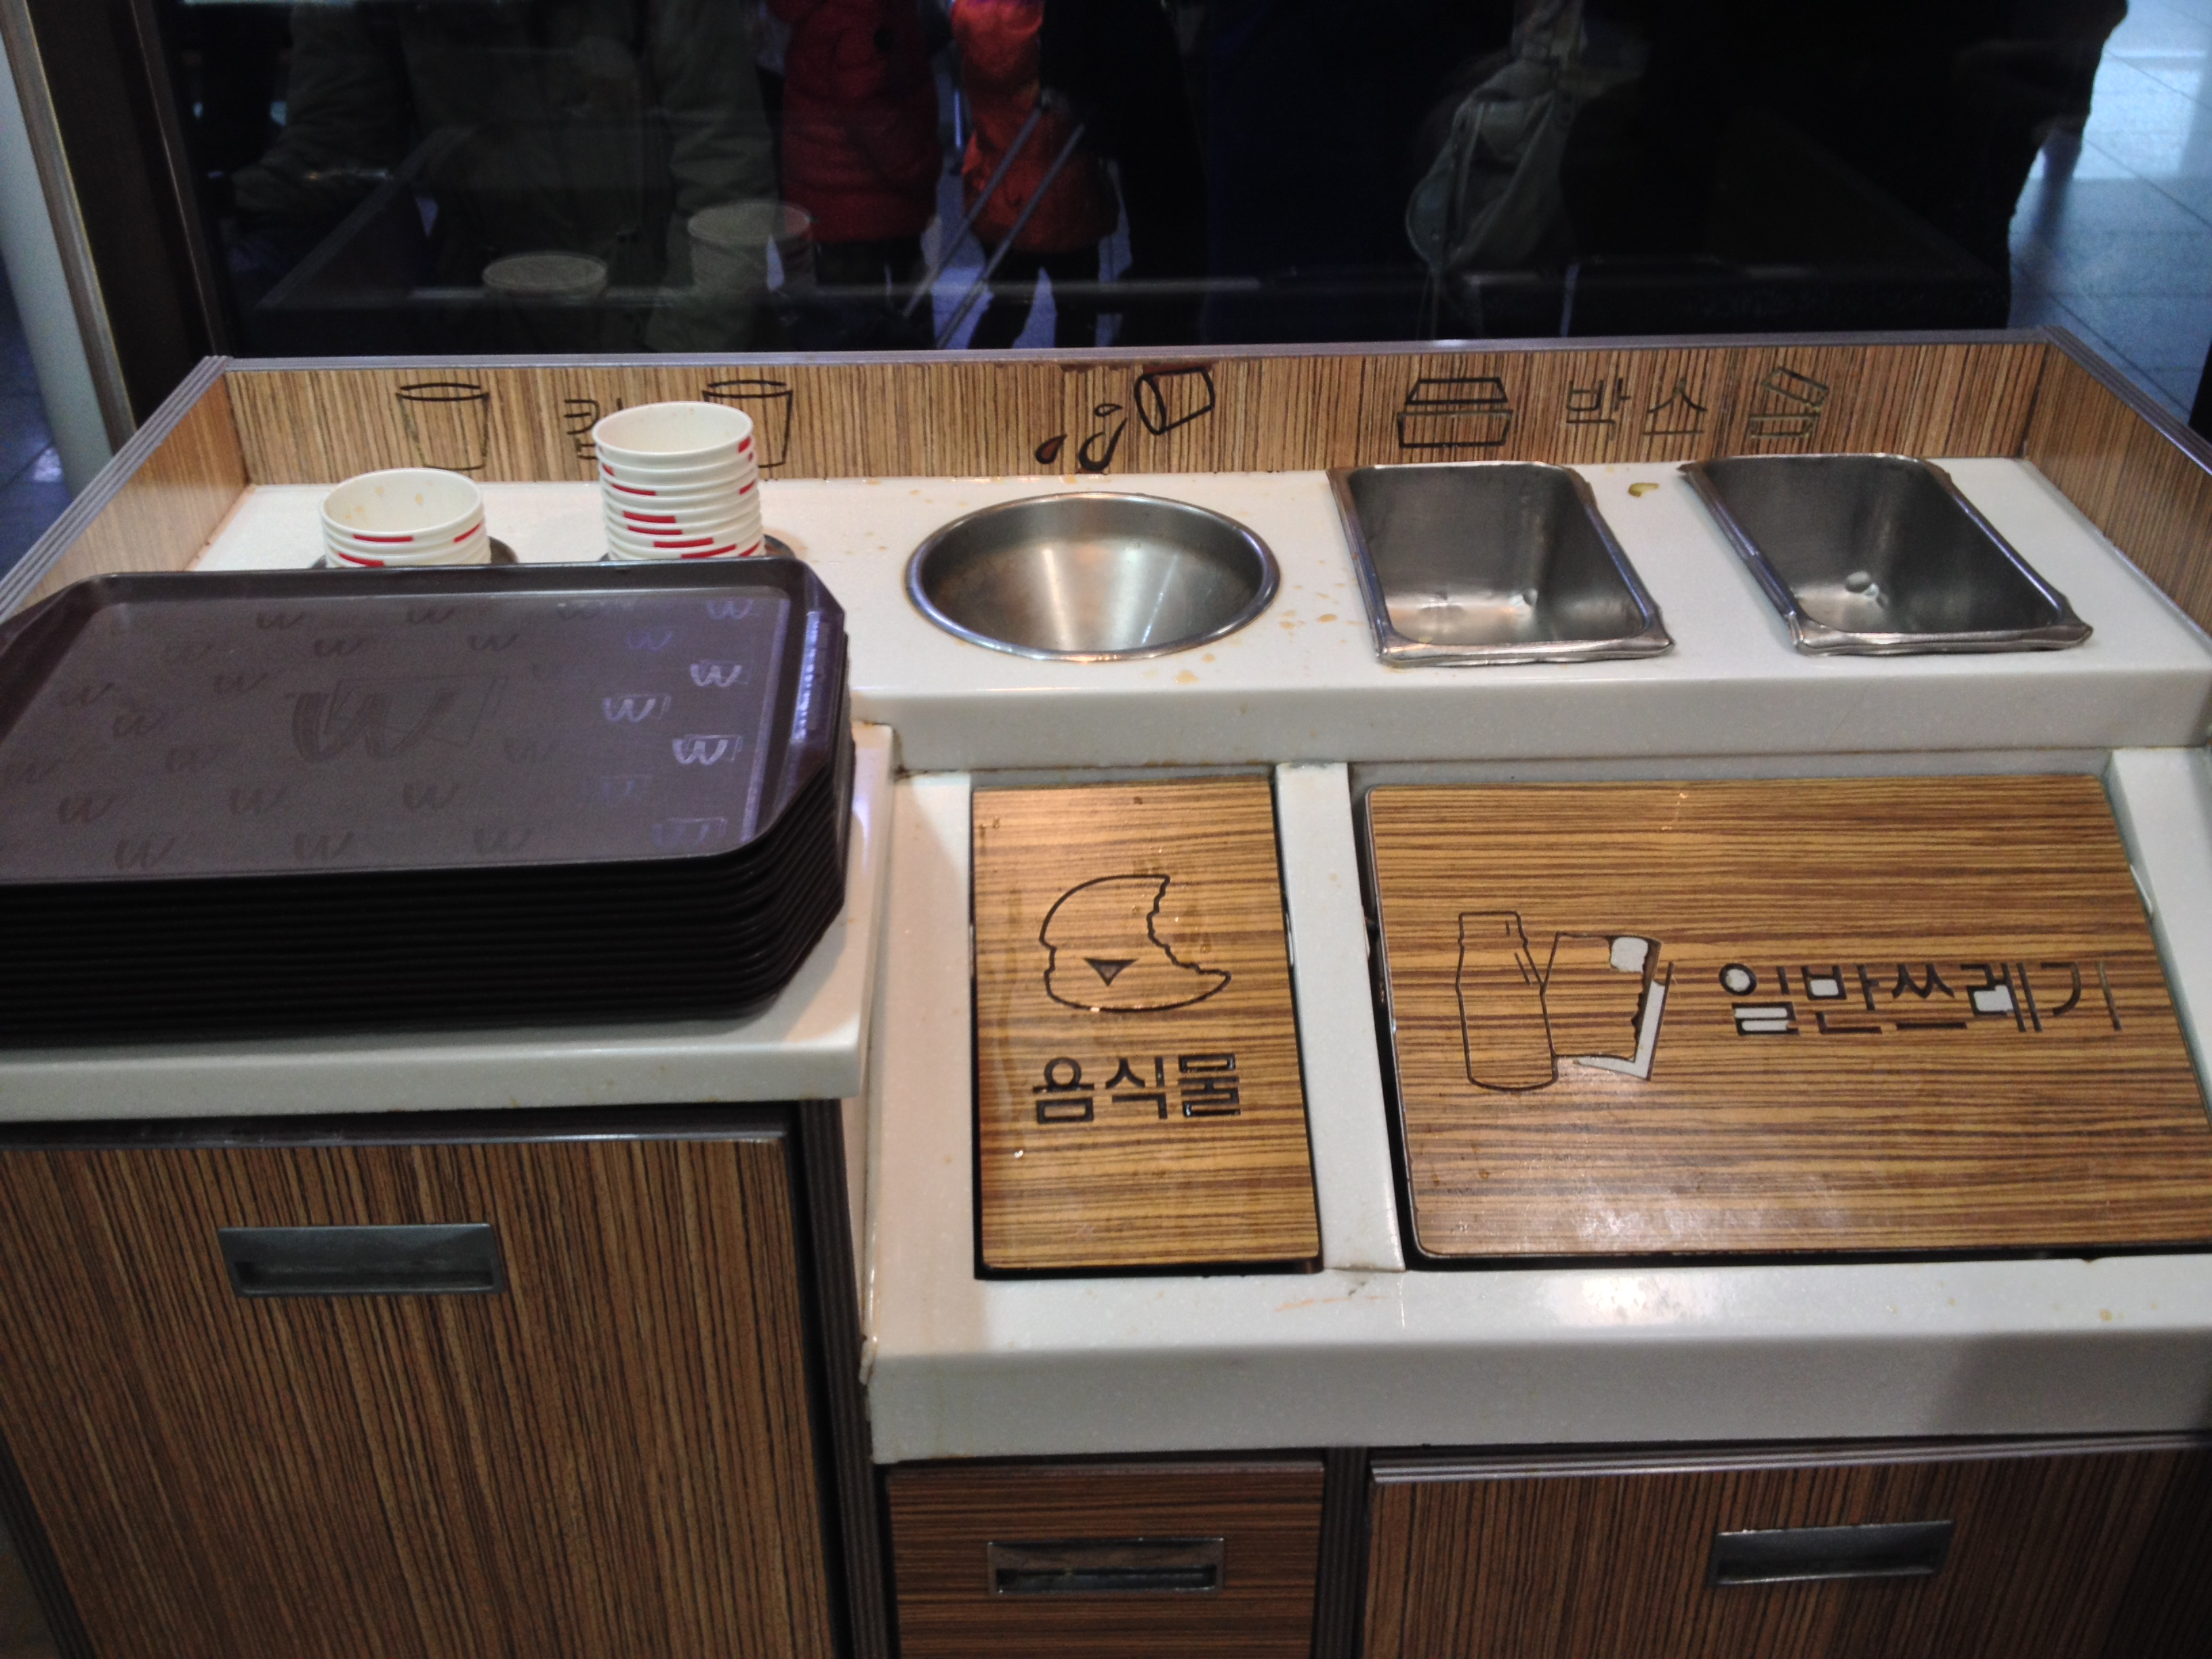 Costco Garbage Disposal >> Travelogue – South Korea | HaltonRecycles